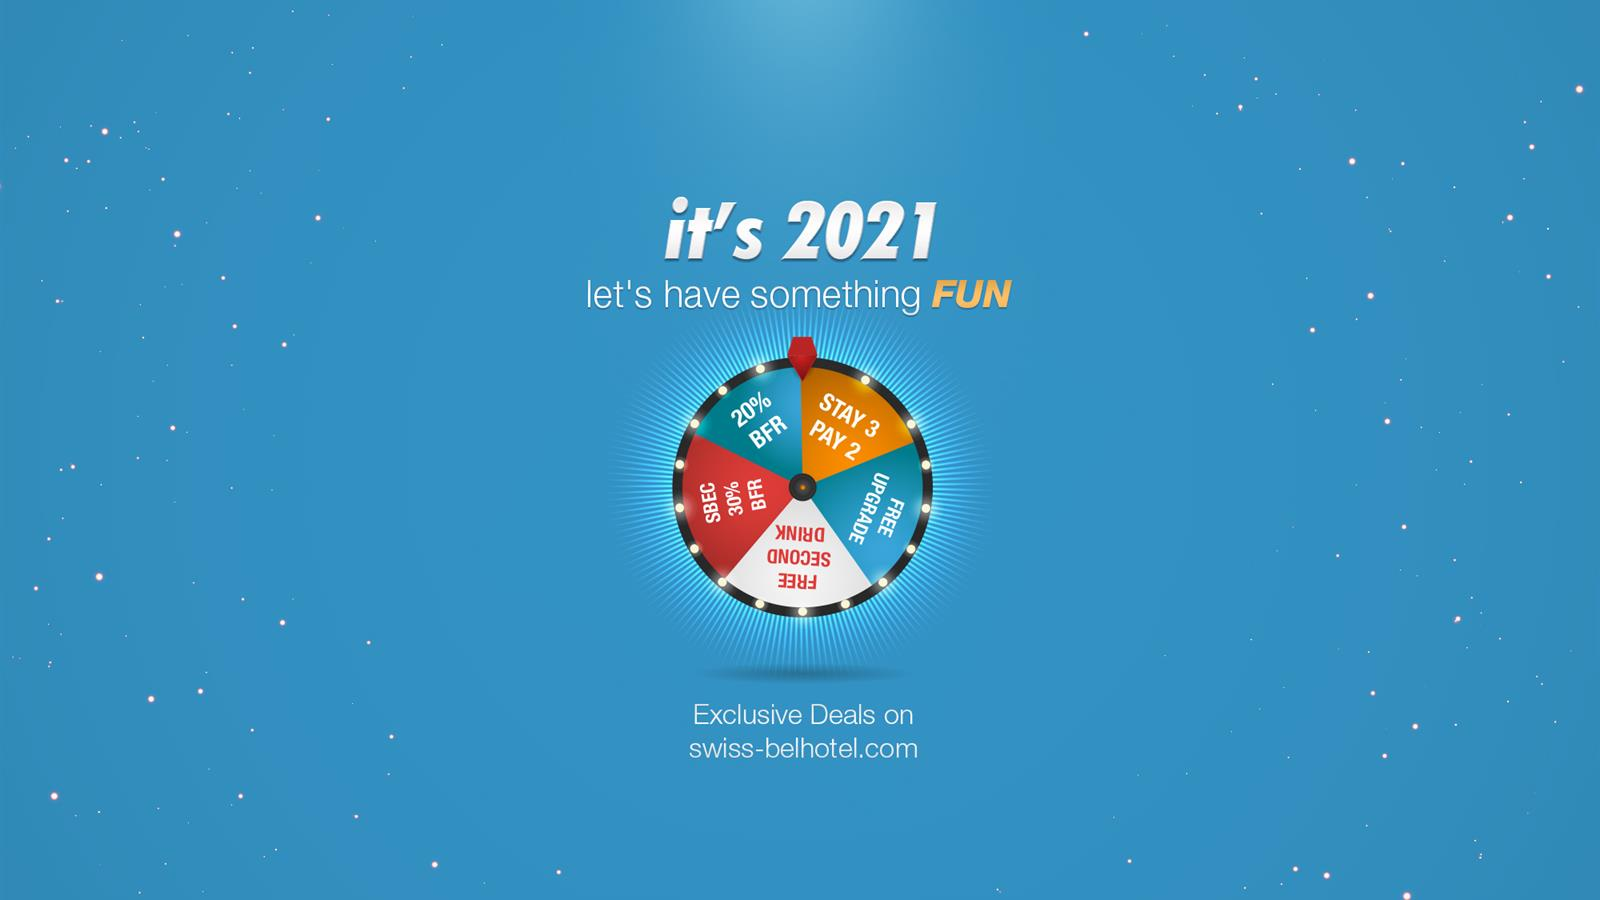 It's 2021 - Let's Have Something Fun!